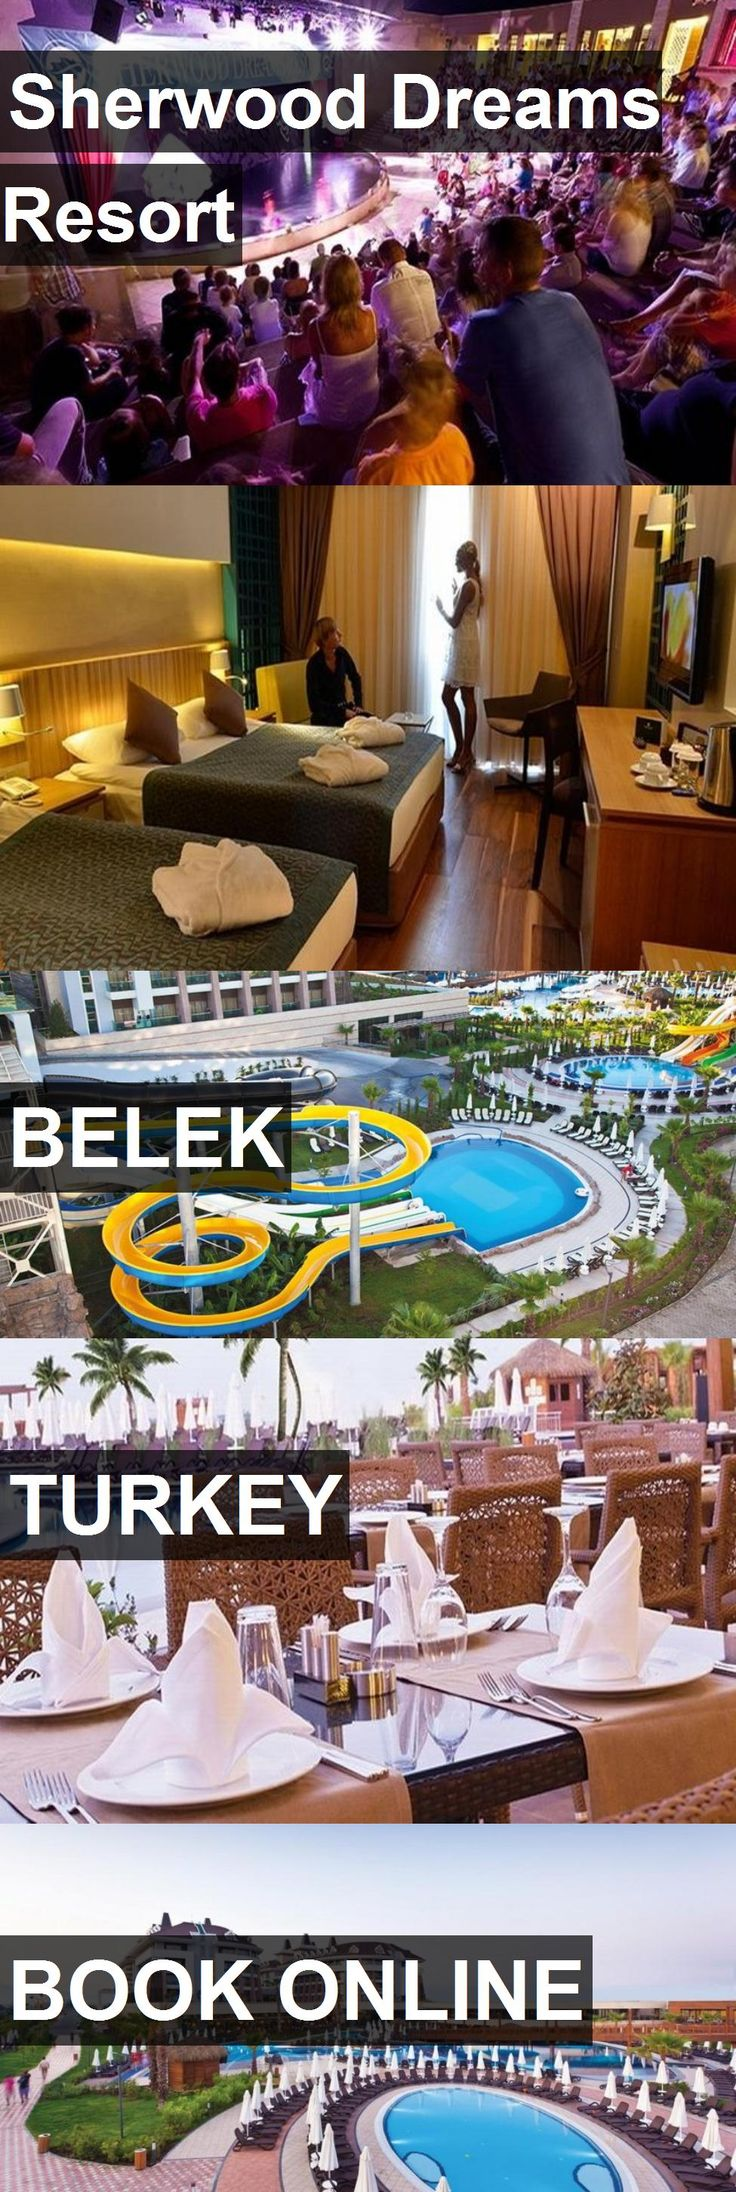 Hotel Sherwood Dreams Resort in Belek, Turkey. For more information, photos, reviews and best prices please follow the link. #Turkey #Belek #travel #vacation #hotel